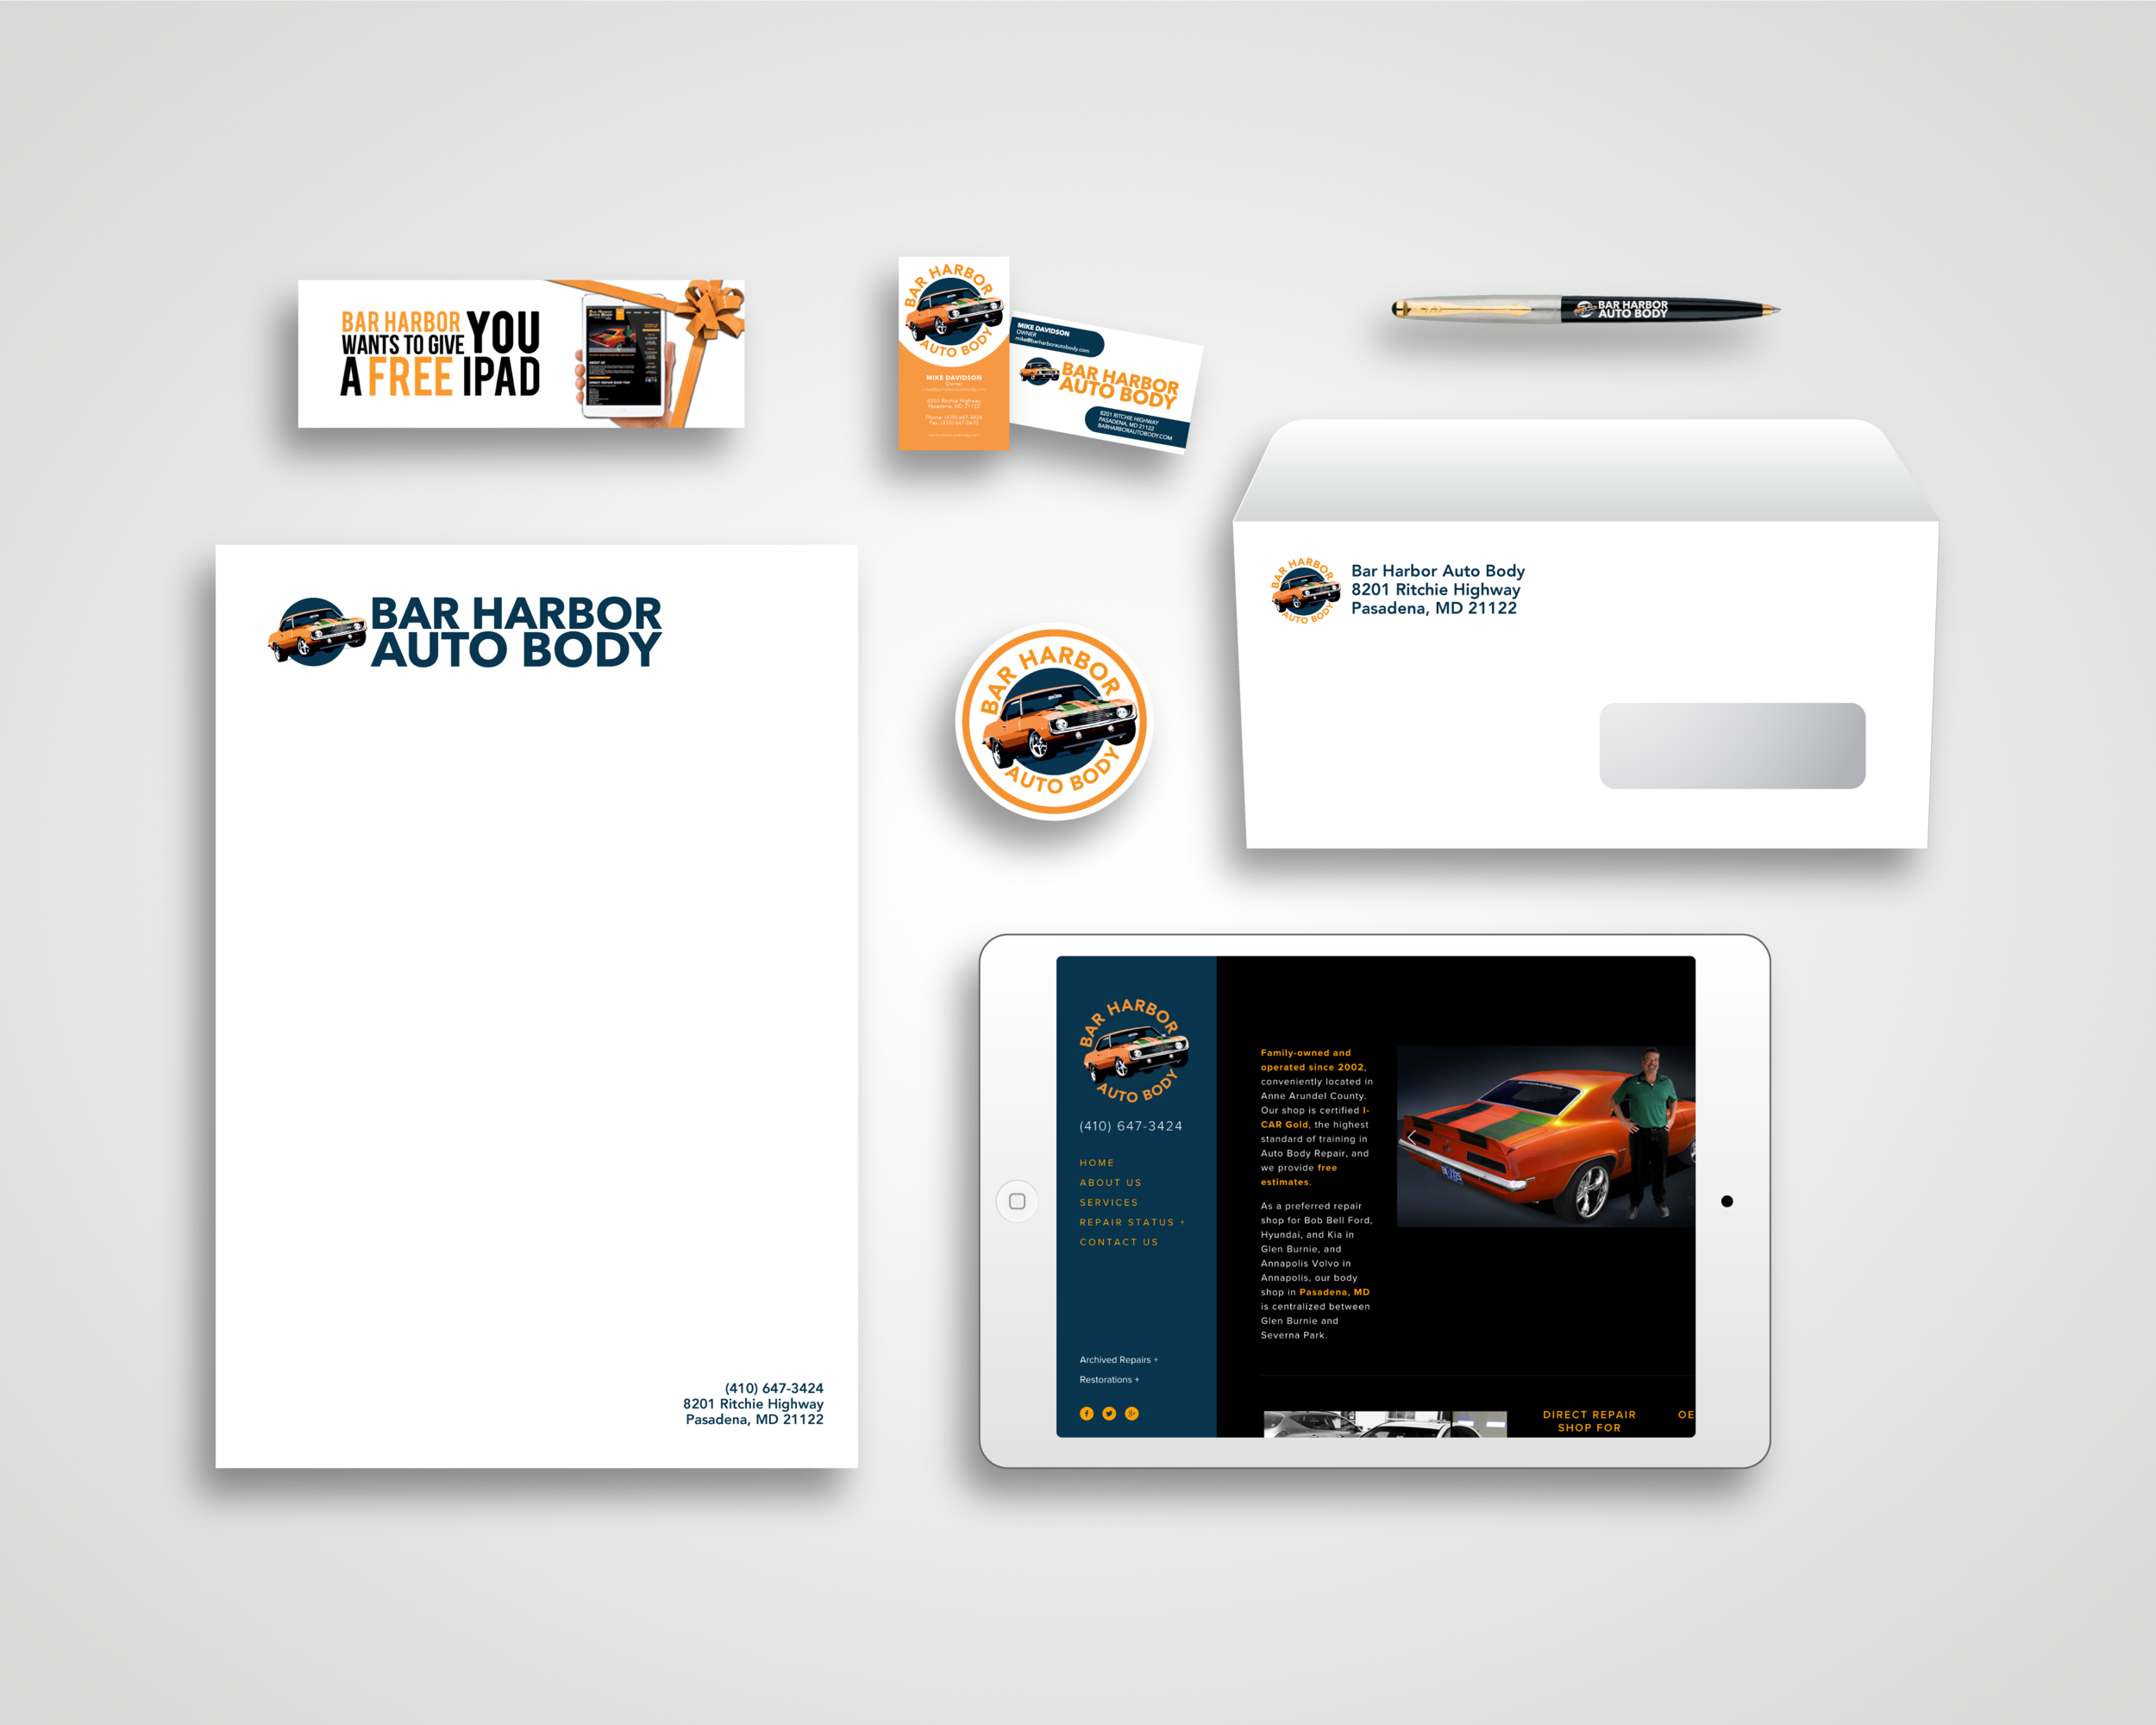 branding-suite-bar-harbor-auto-body